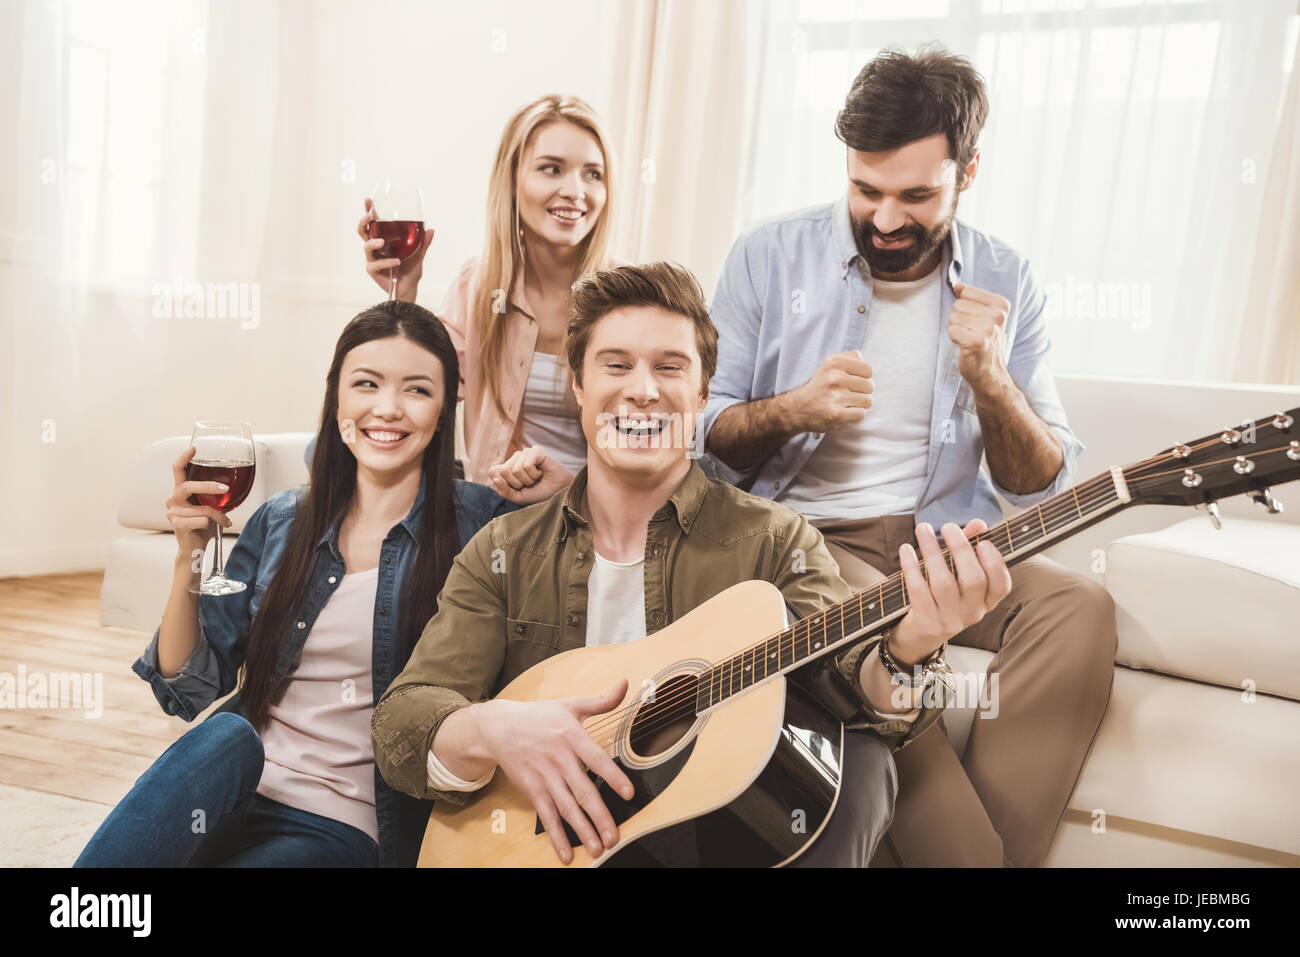 Diverse people partying together at dining room, playing acoustic guitar - Stock Image